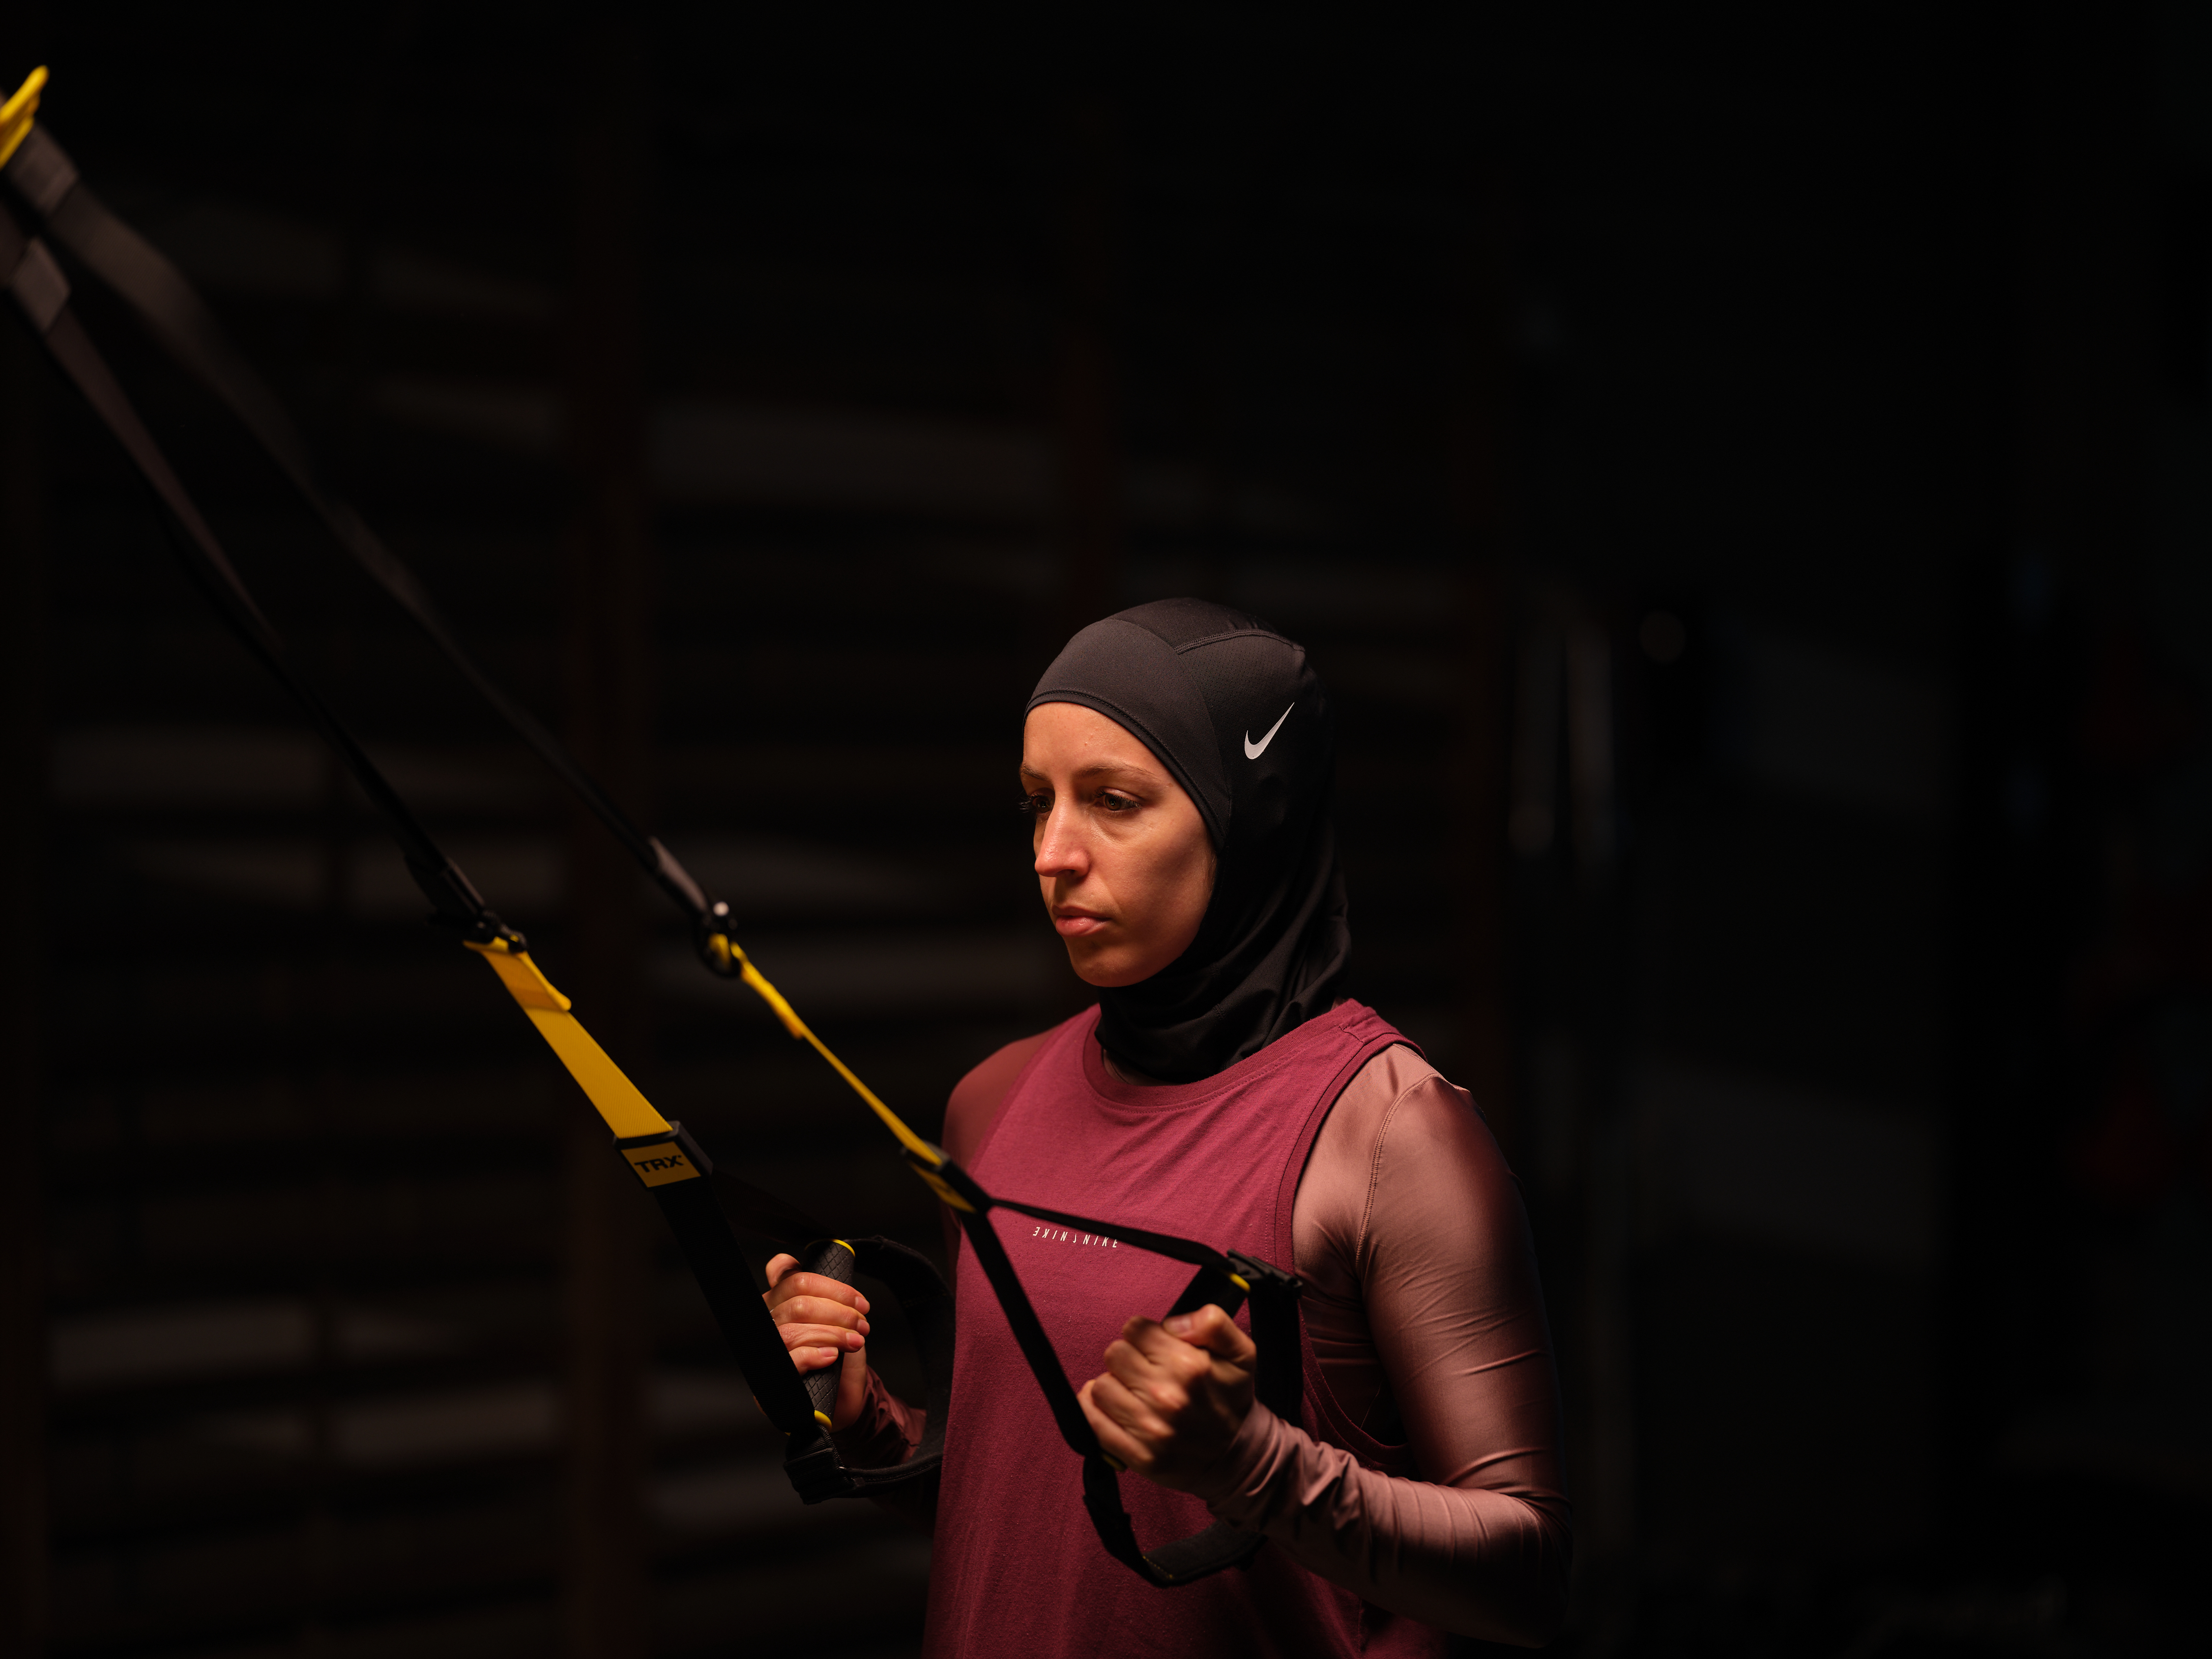 Nesrine Dally using the TRX Suspension Trainer for a TRX Row. She wears a black hijab, pink longsleeve shirt, and dark rose vest.